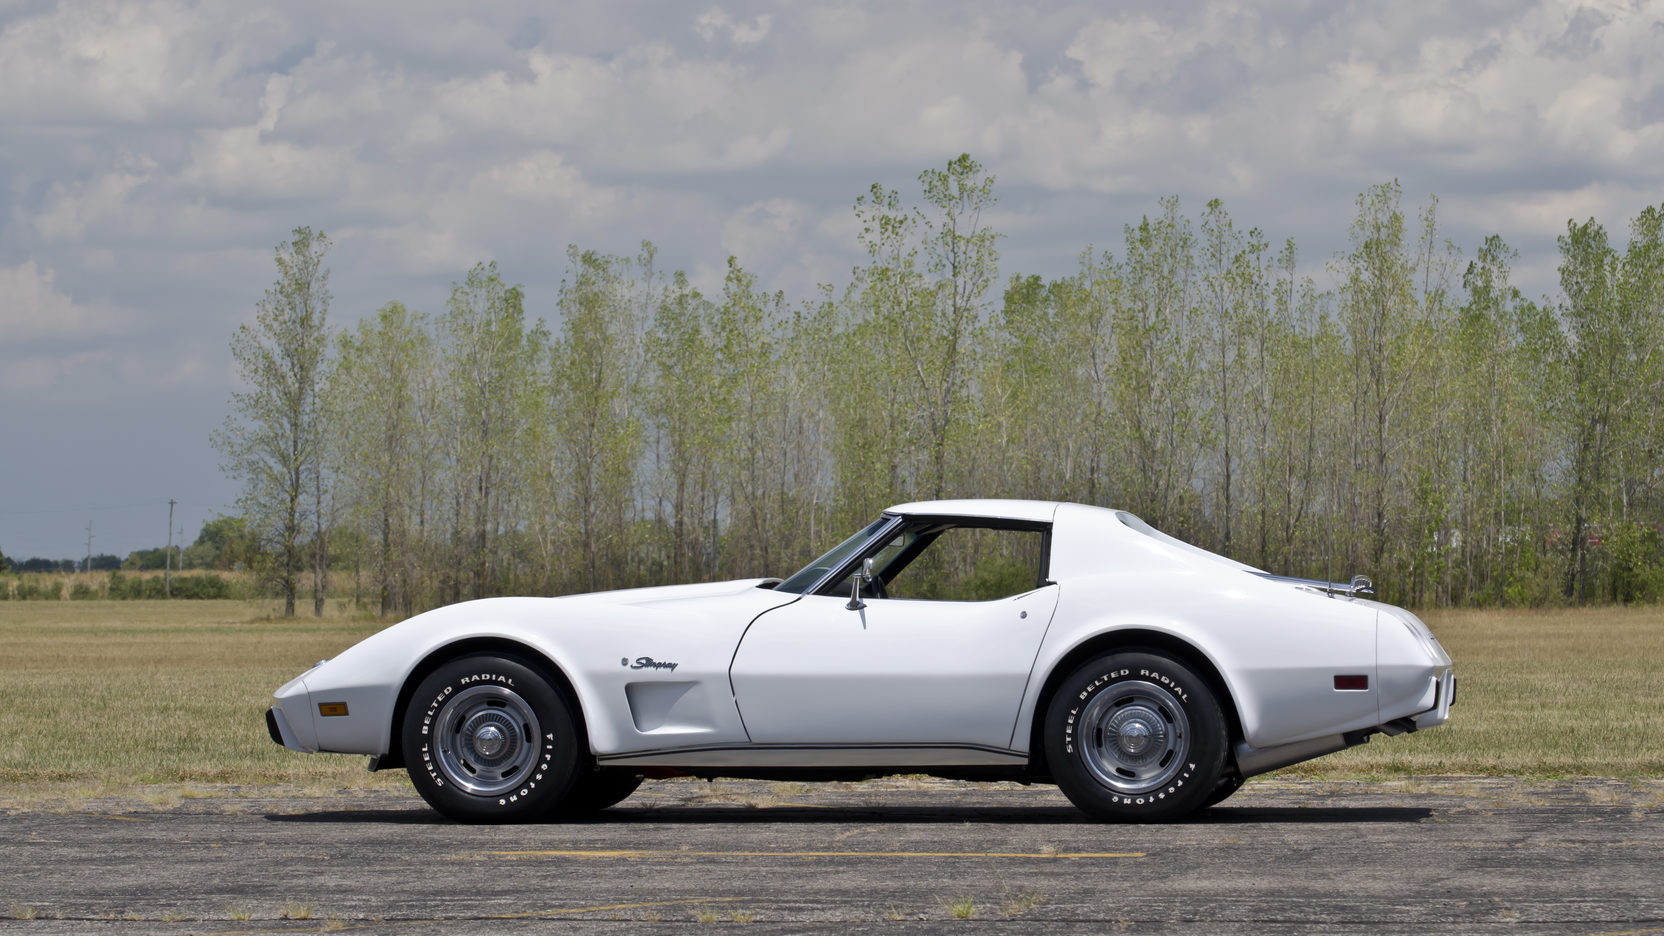 1976 Chevrolet Corvette profile